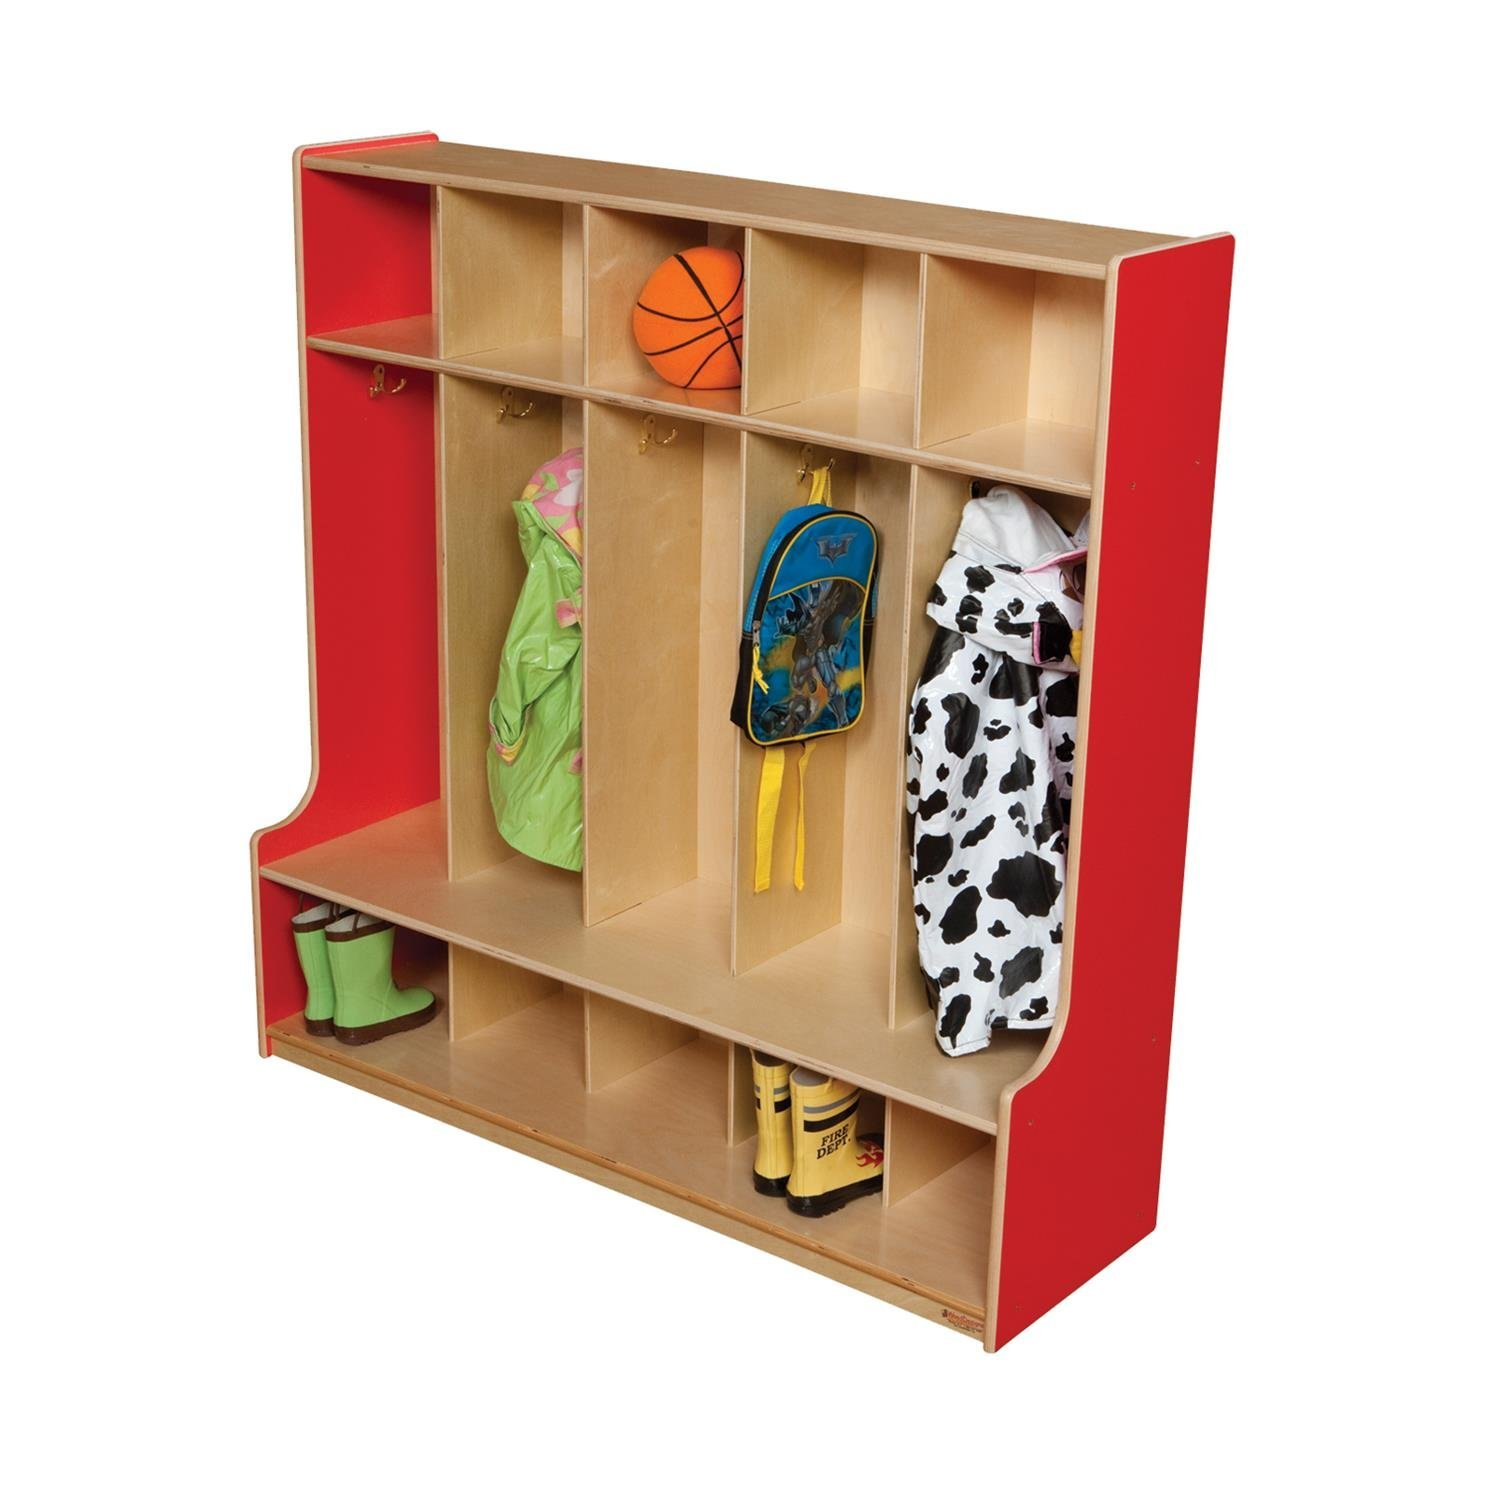 "Wood Designs 51000R Strawberry Red 5 Section Seat Locker, 49"" Height, 18.5"" Width, 51"" Length"